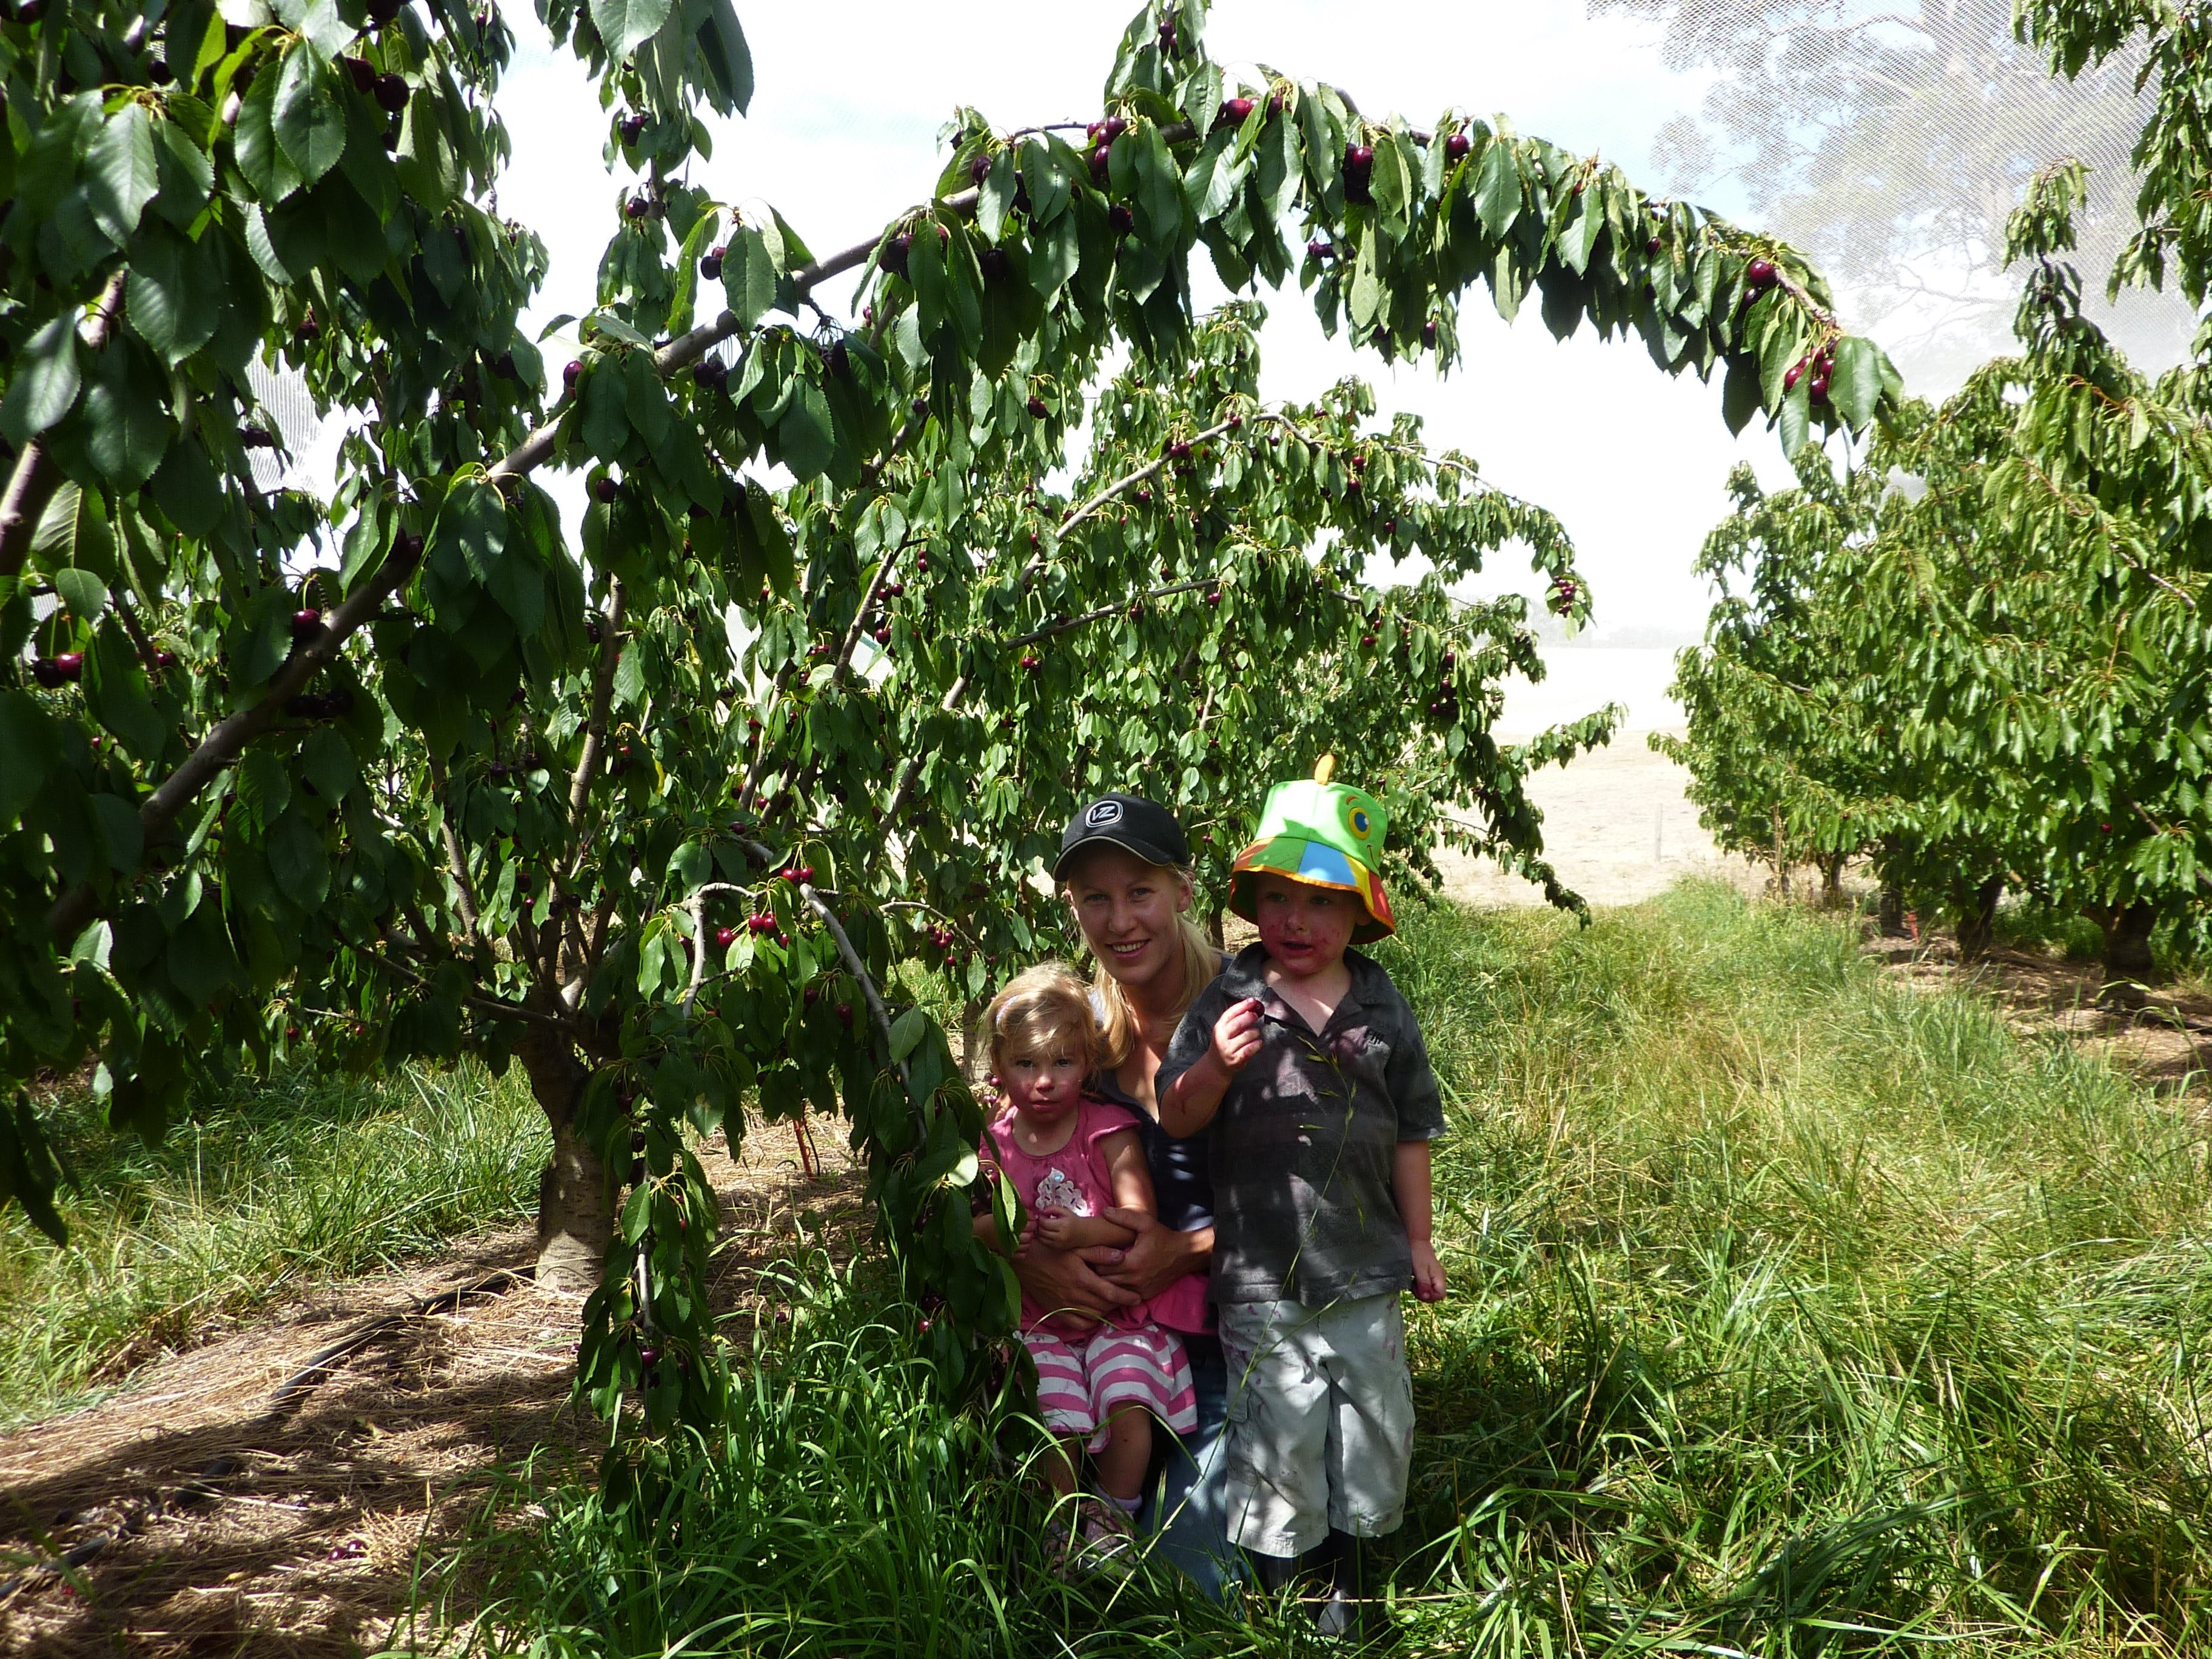 Harben Vale Pick Your Own Cherries - Tourism Adelaide